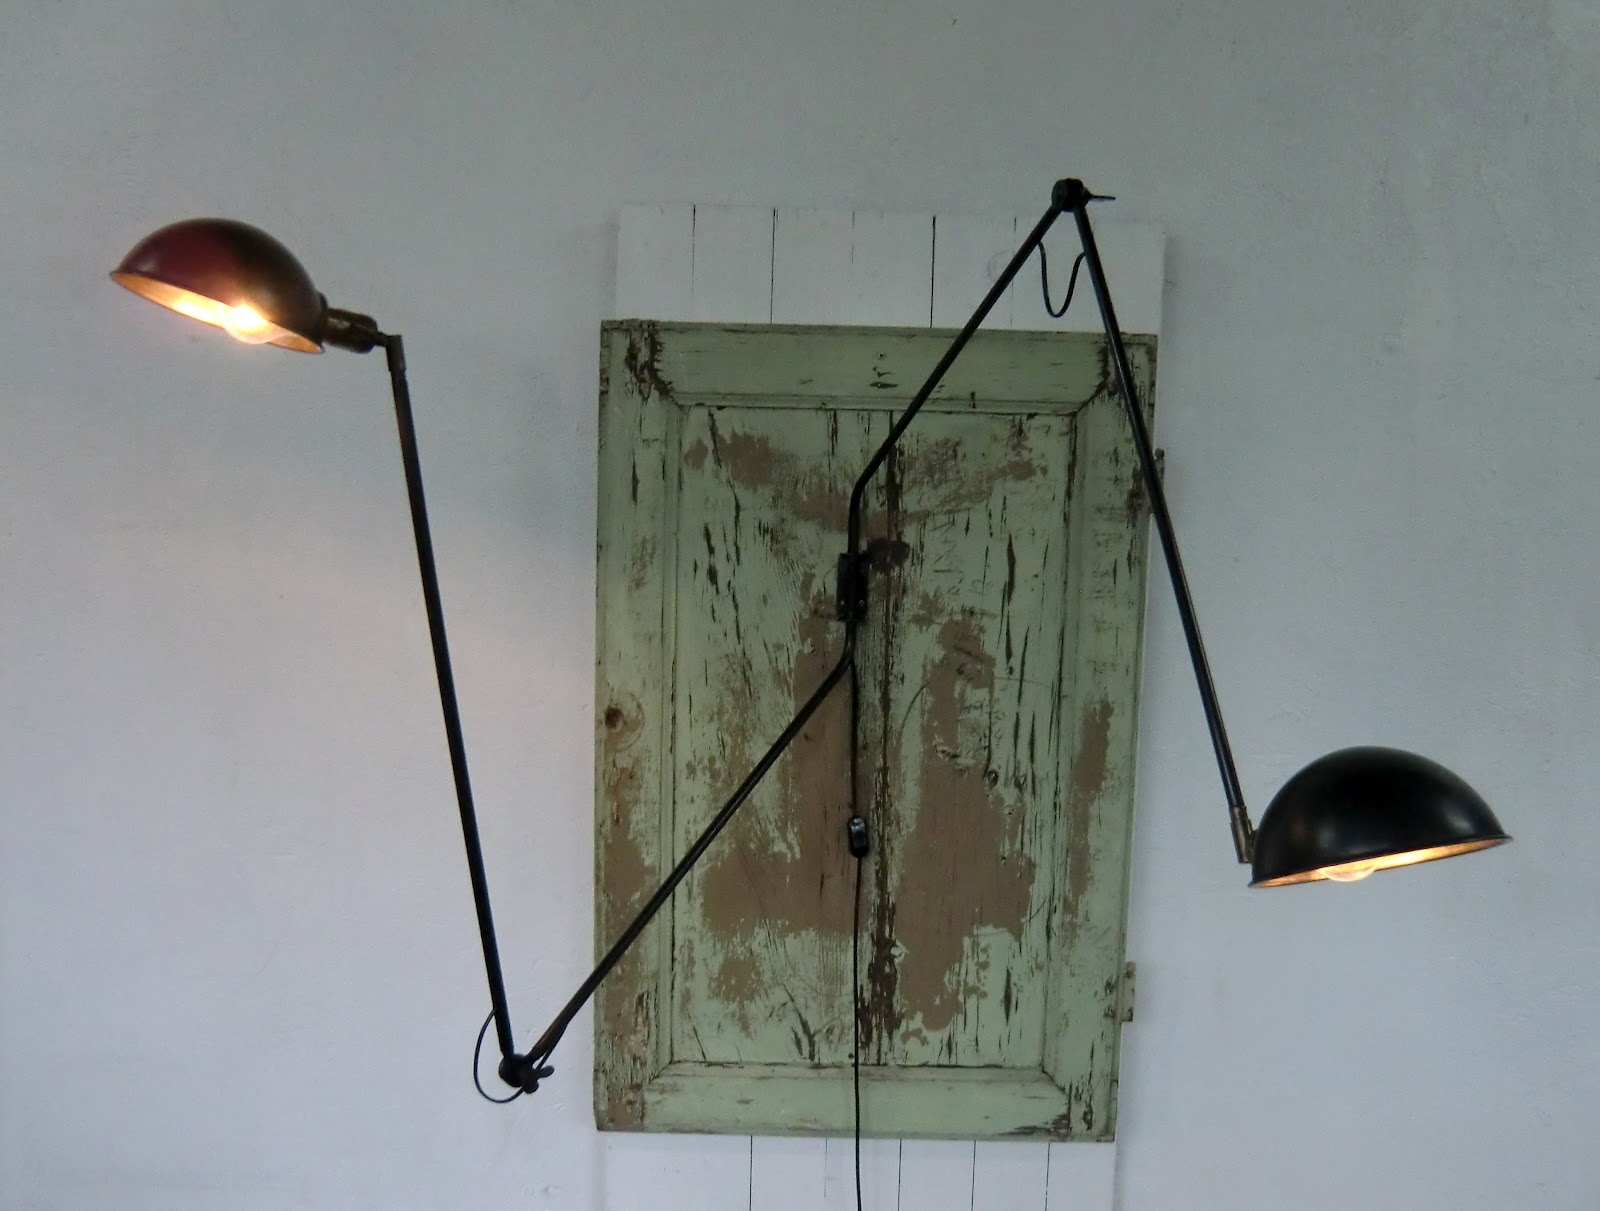 Genial lampe murale industrielle/wo and w collection applique ...